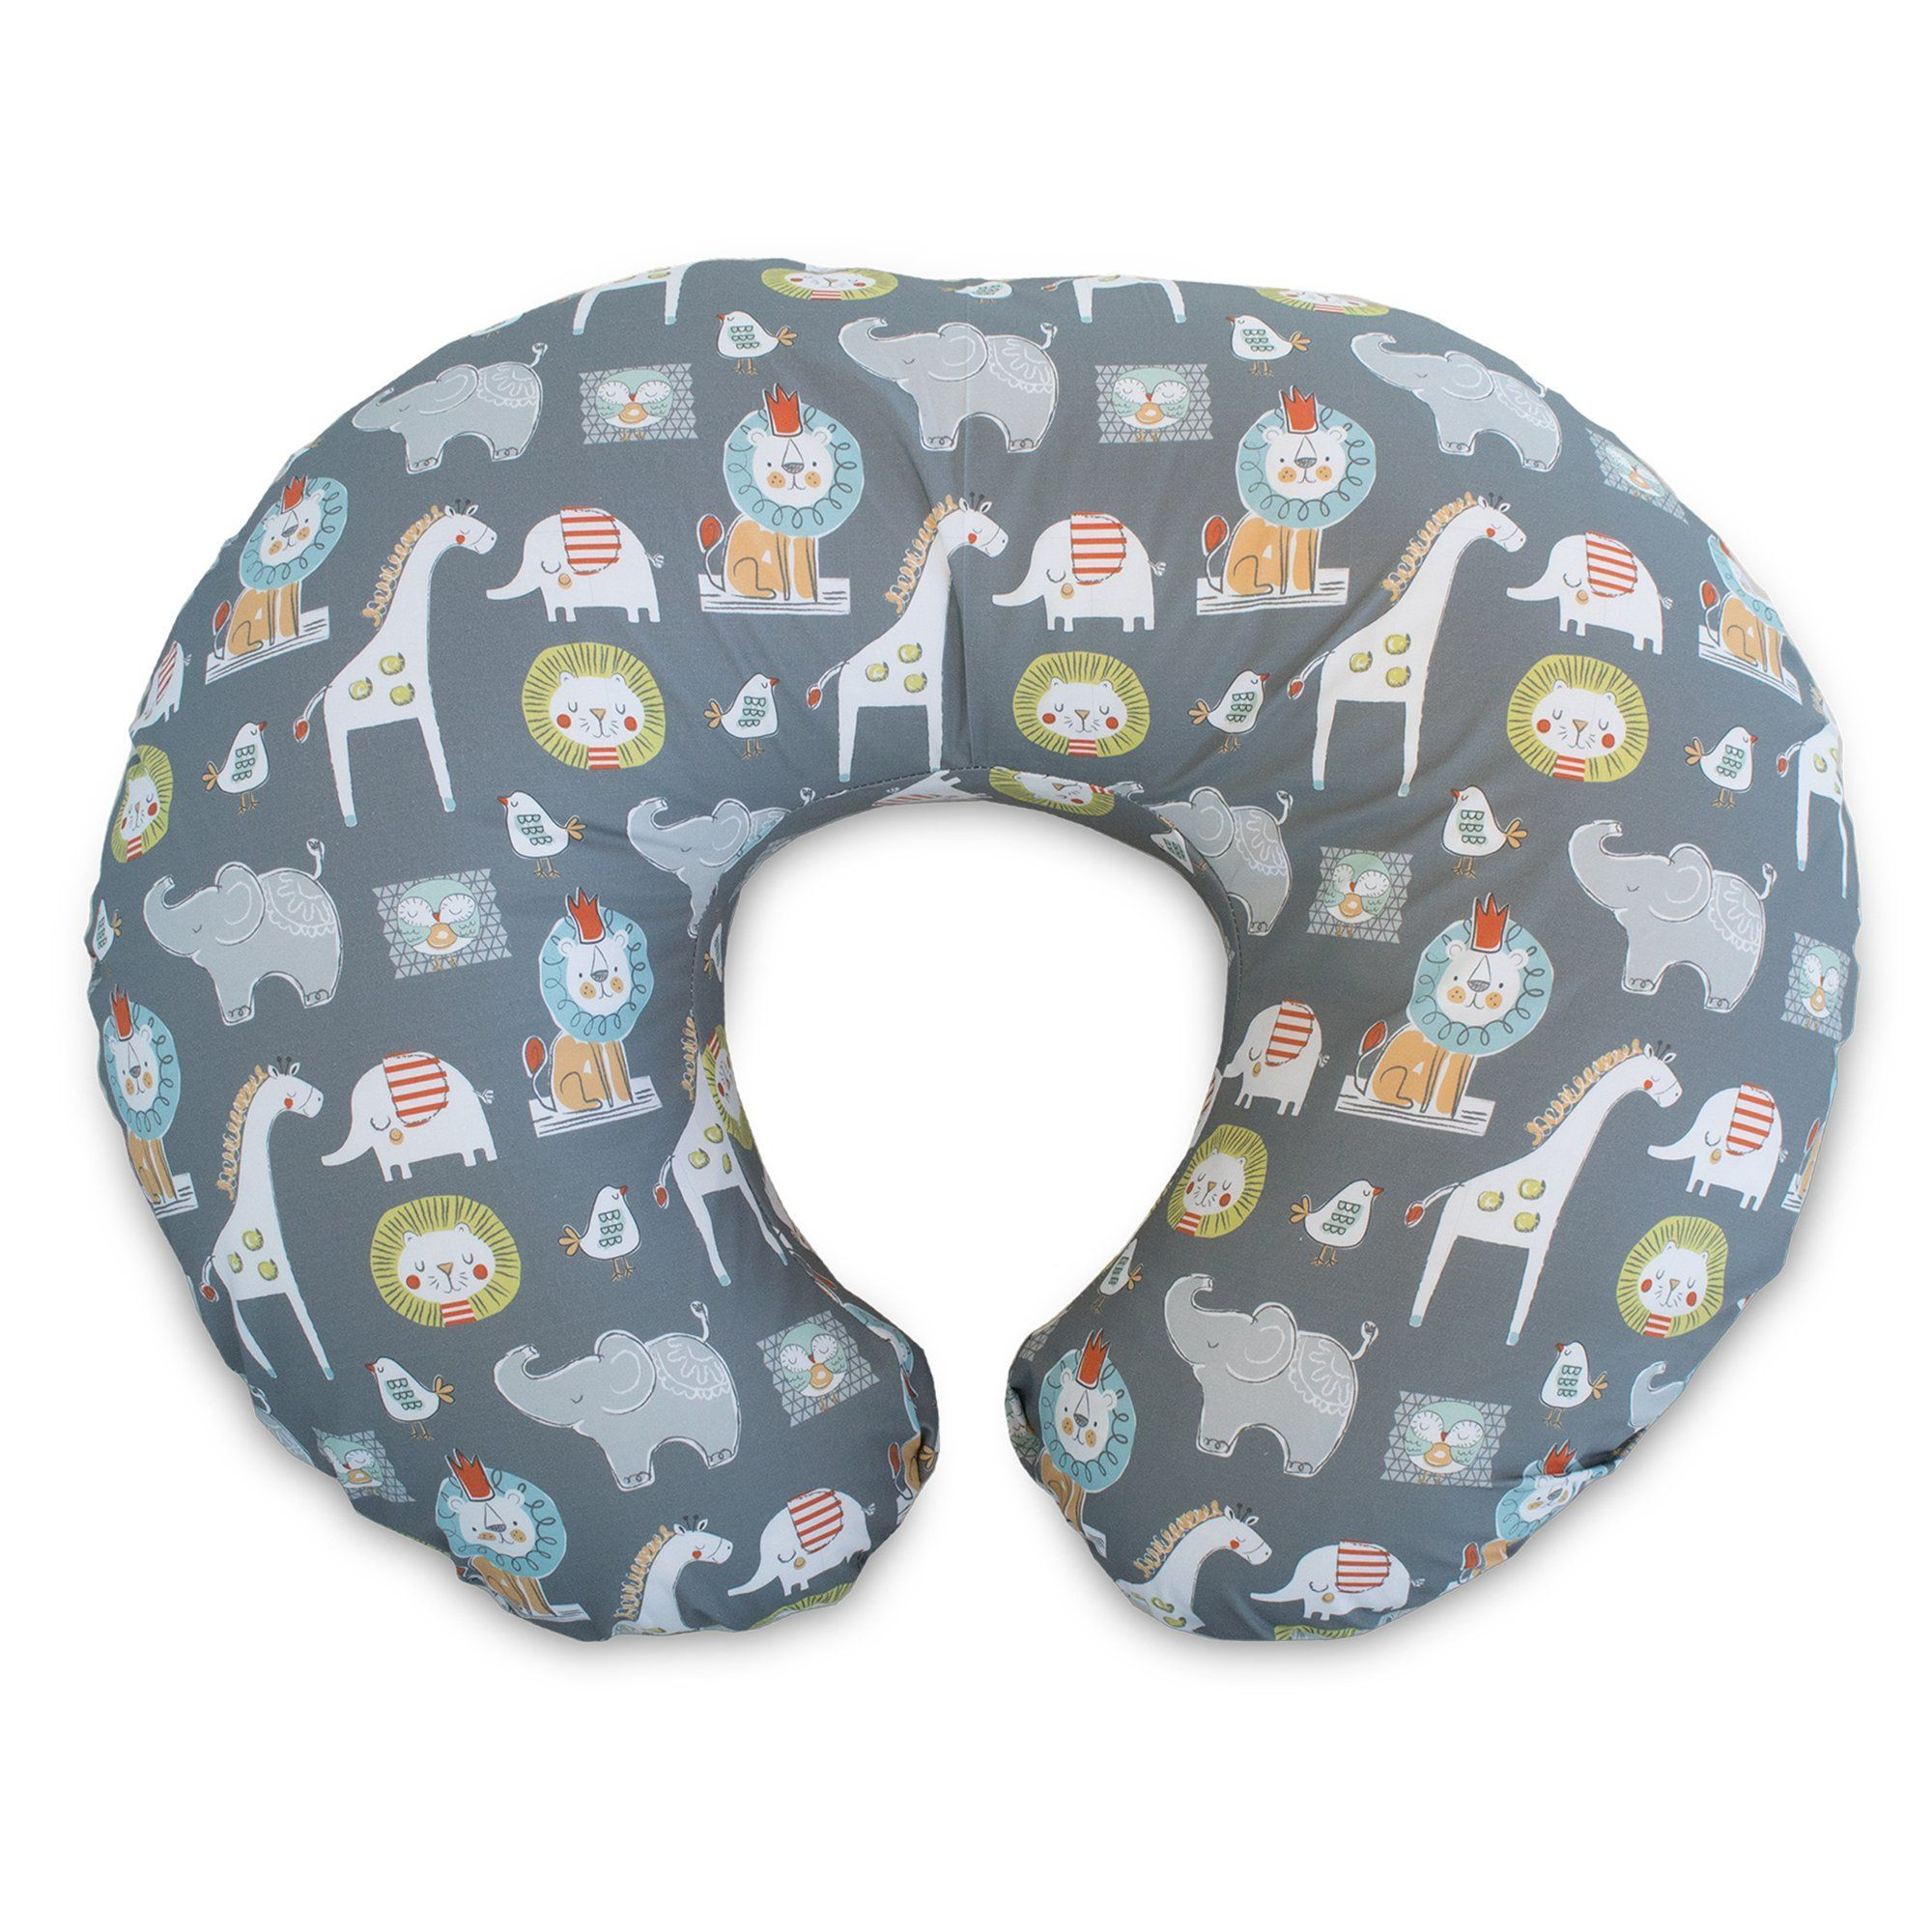 The original boppy ©!  This award winning Feeding & Infant support pillow not only provides a comfortable nursing position, but also allows for growth of your little one with the uses during four different stages; Feeding, Tummy Time, Sitting, and Playing!